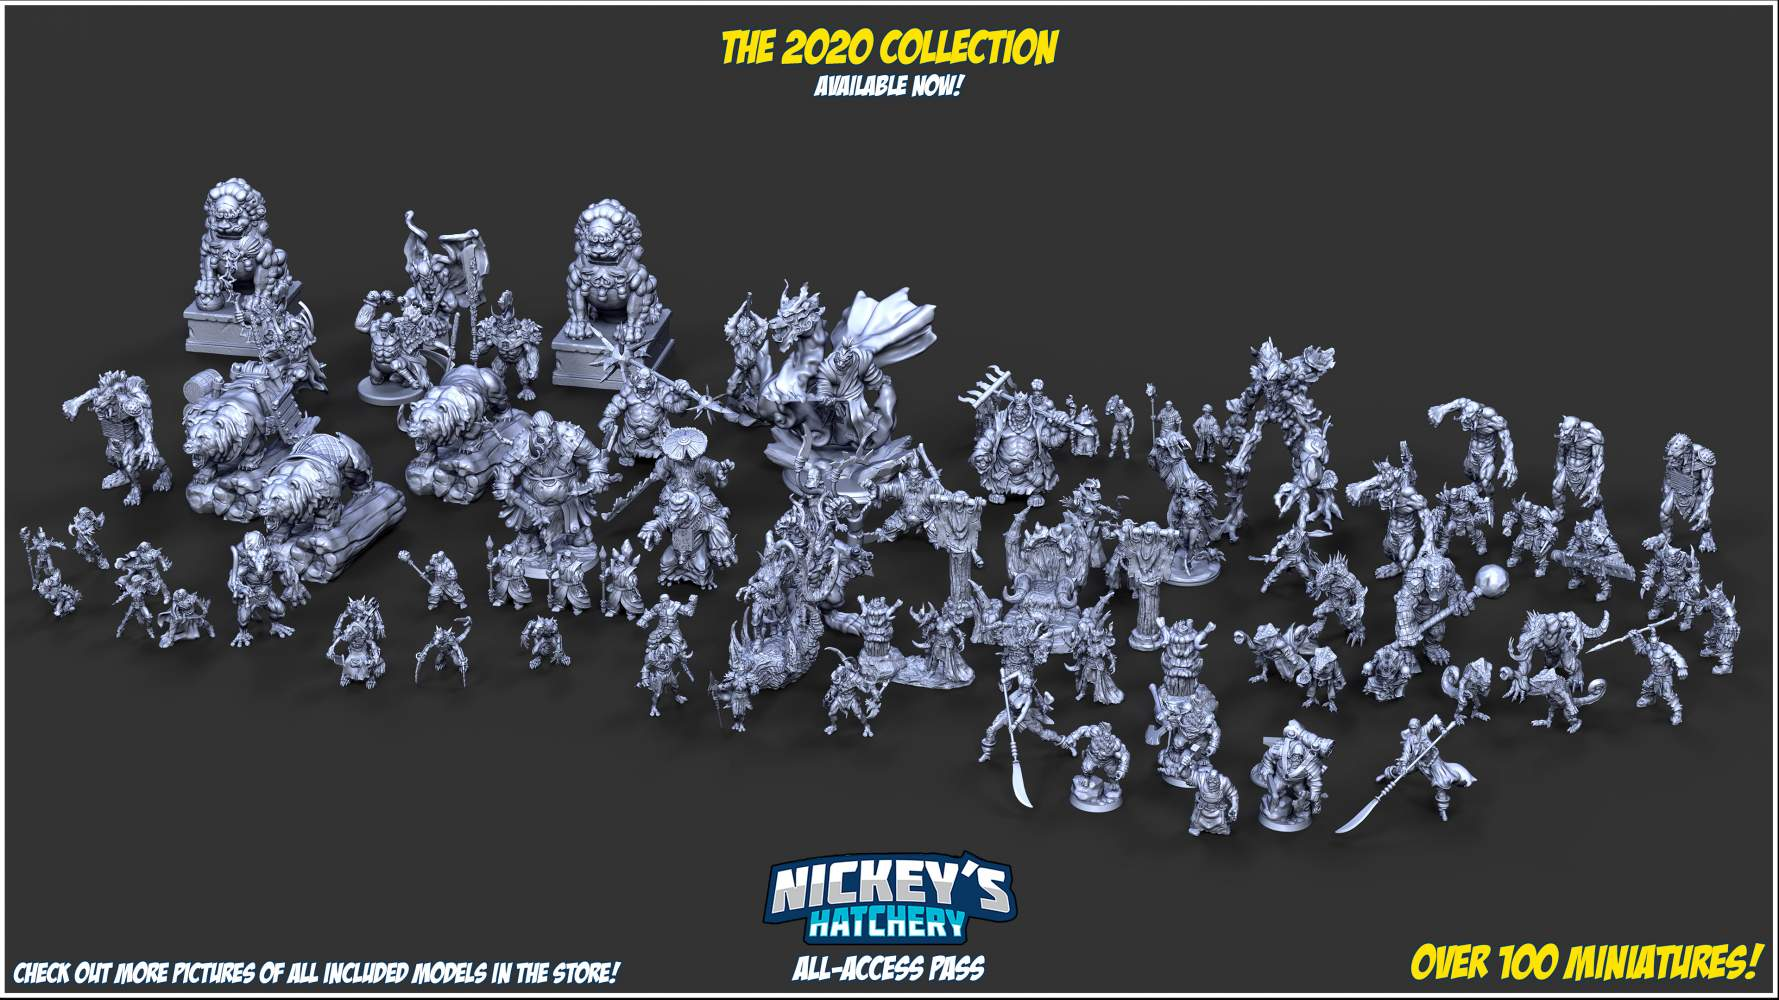 The 2020 Collection's Cover